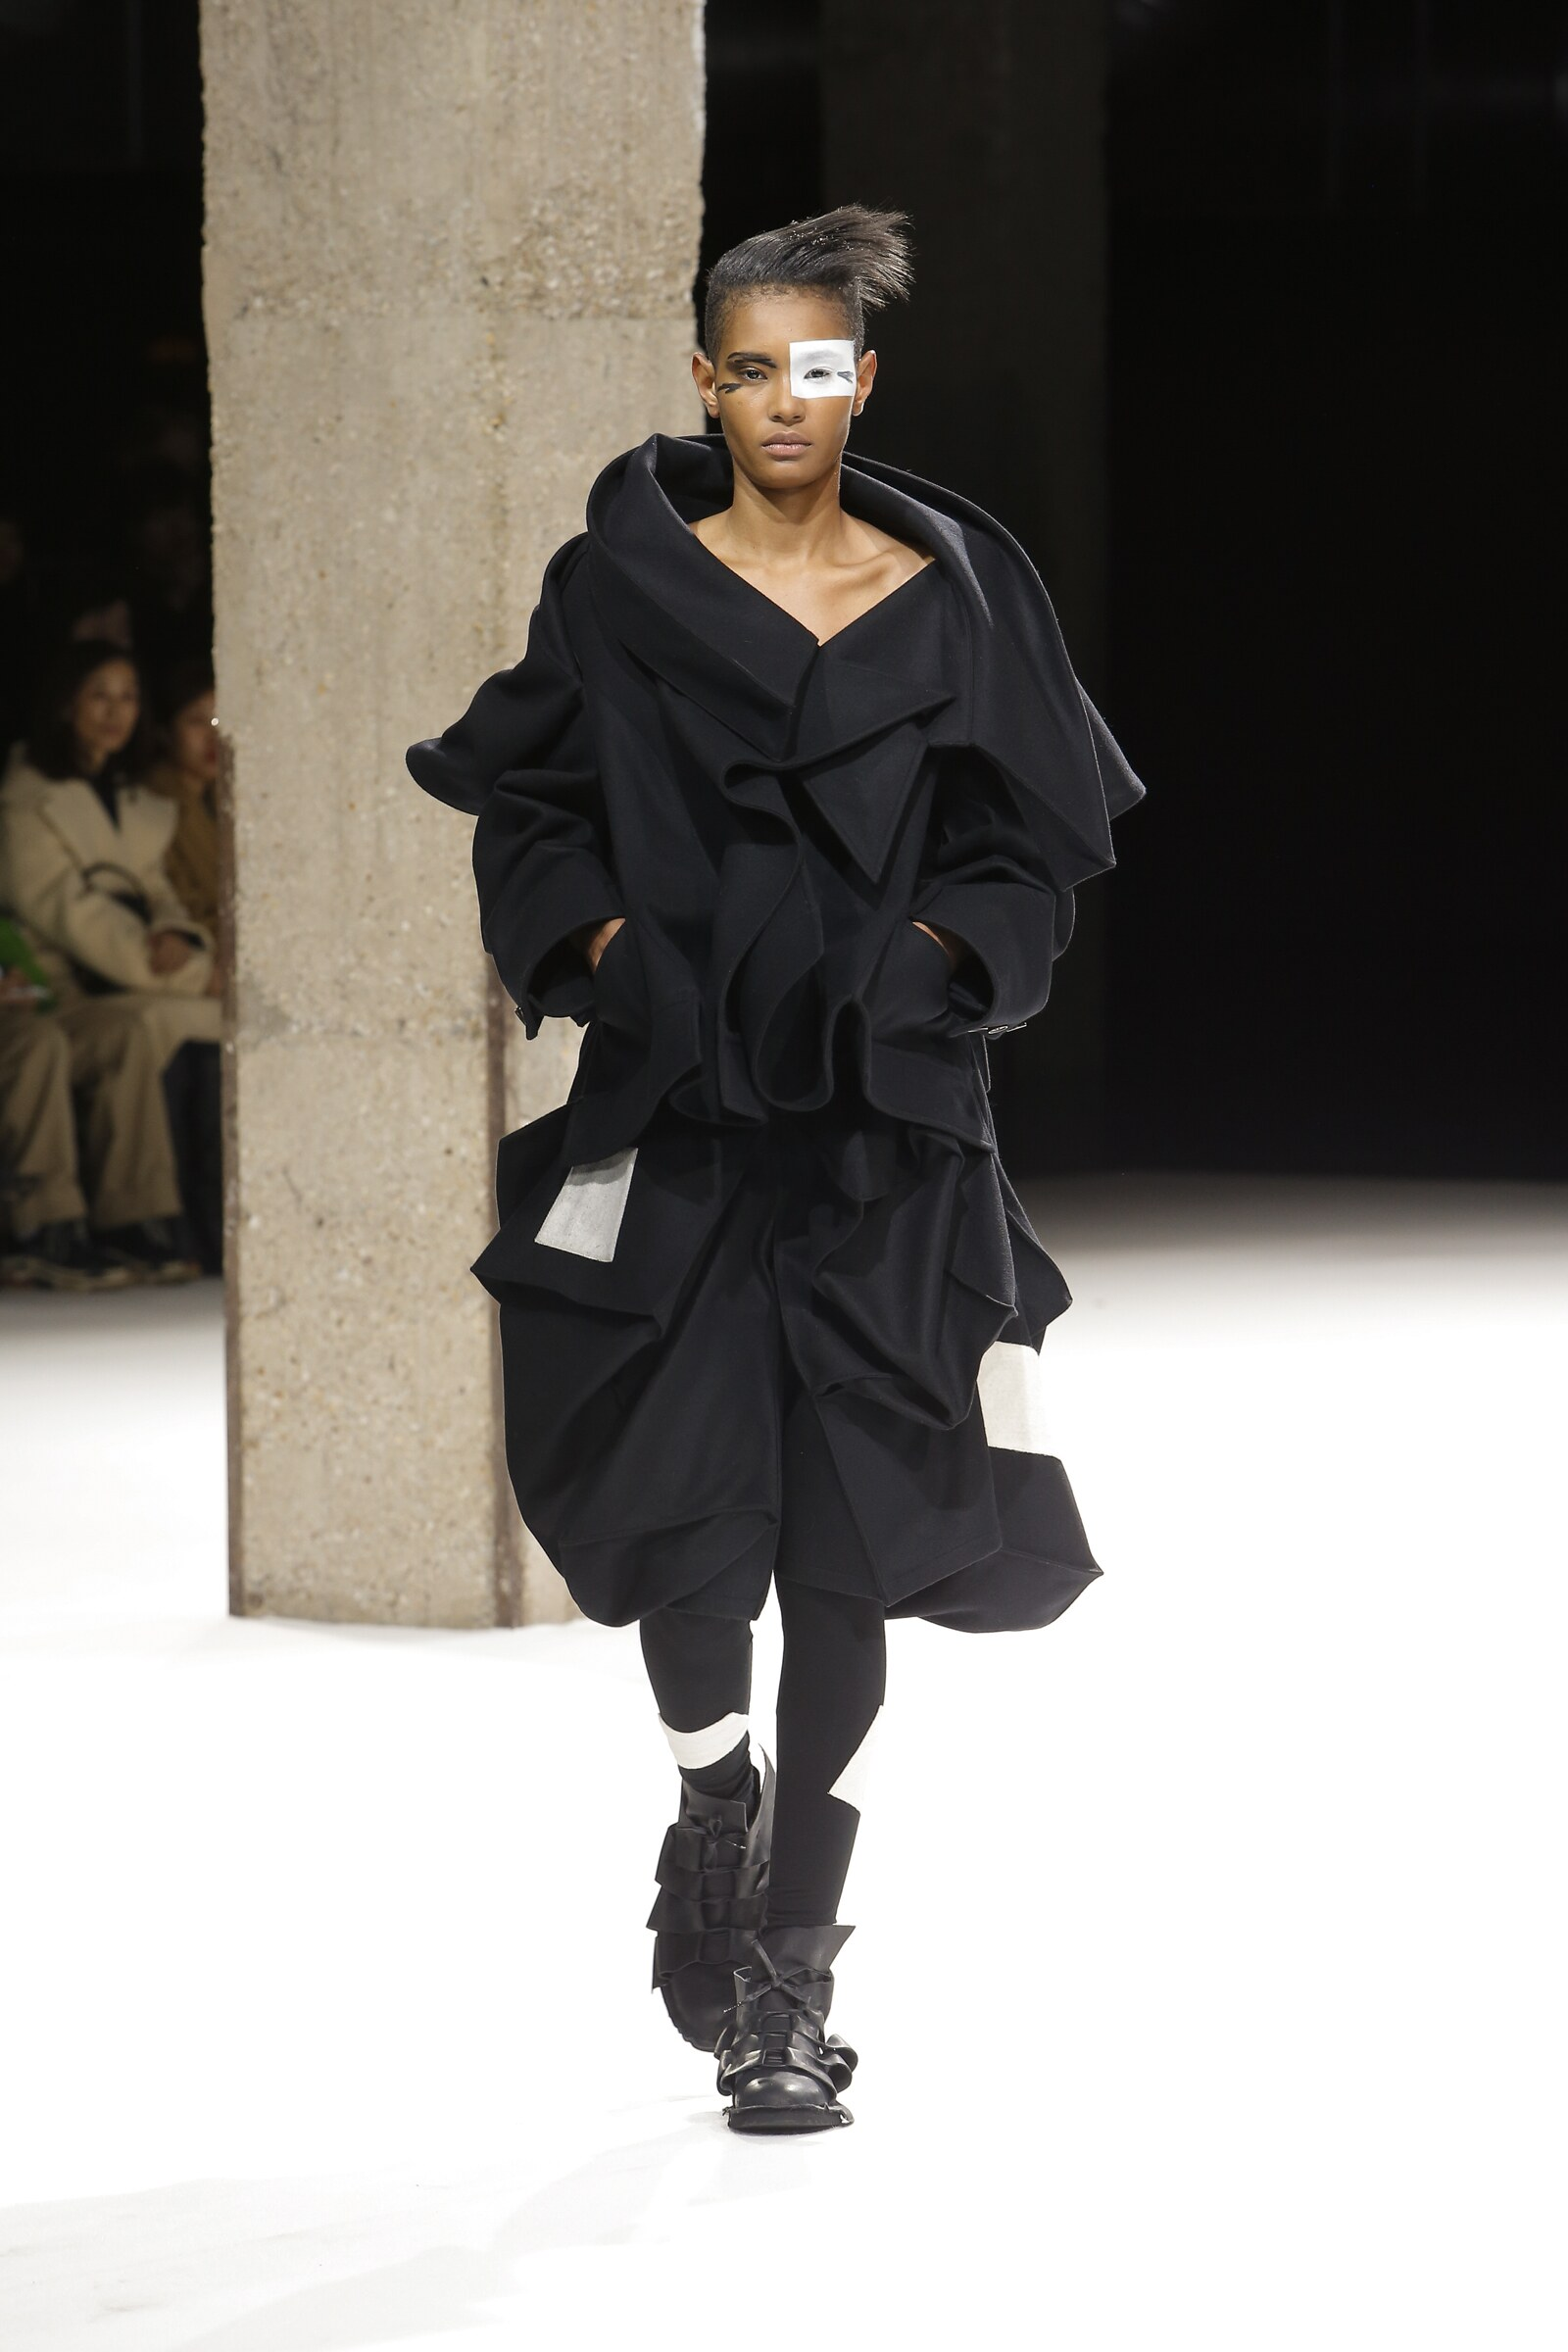 Runway Yohji Yamamoto Fall Winter 2018 Women's Collection Paris Fashion Week